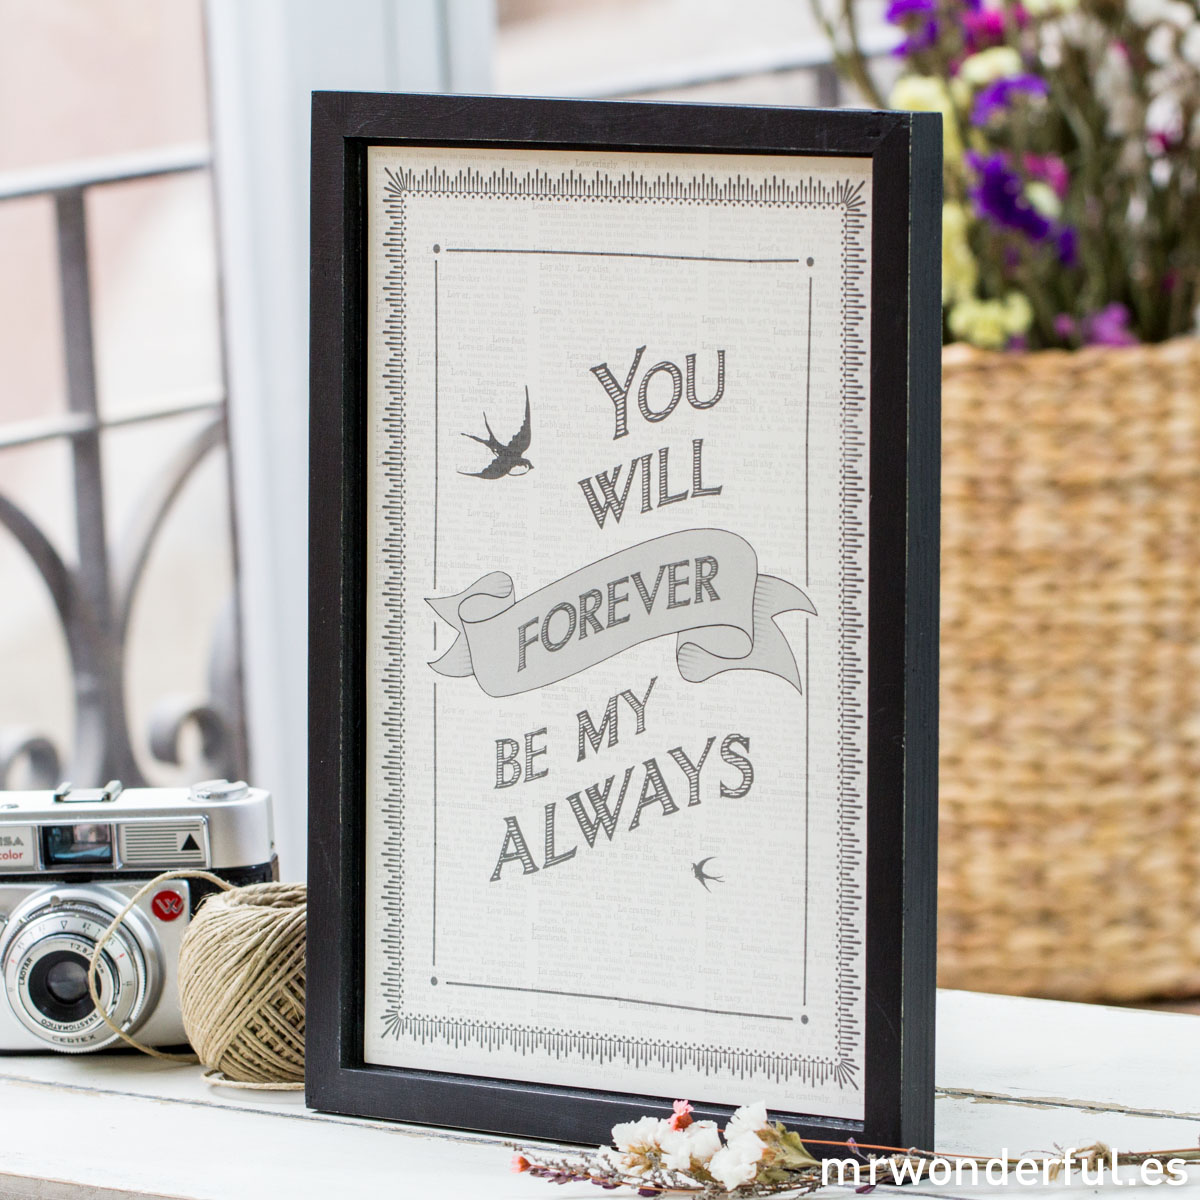 mrwonderful_4583_cuadro-mediano-madera_you-forever-always-8